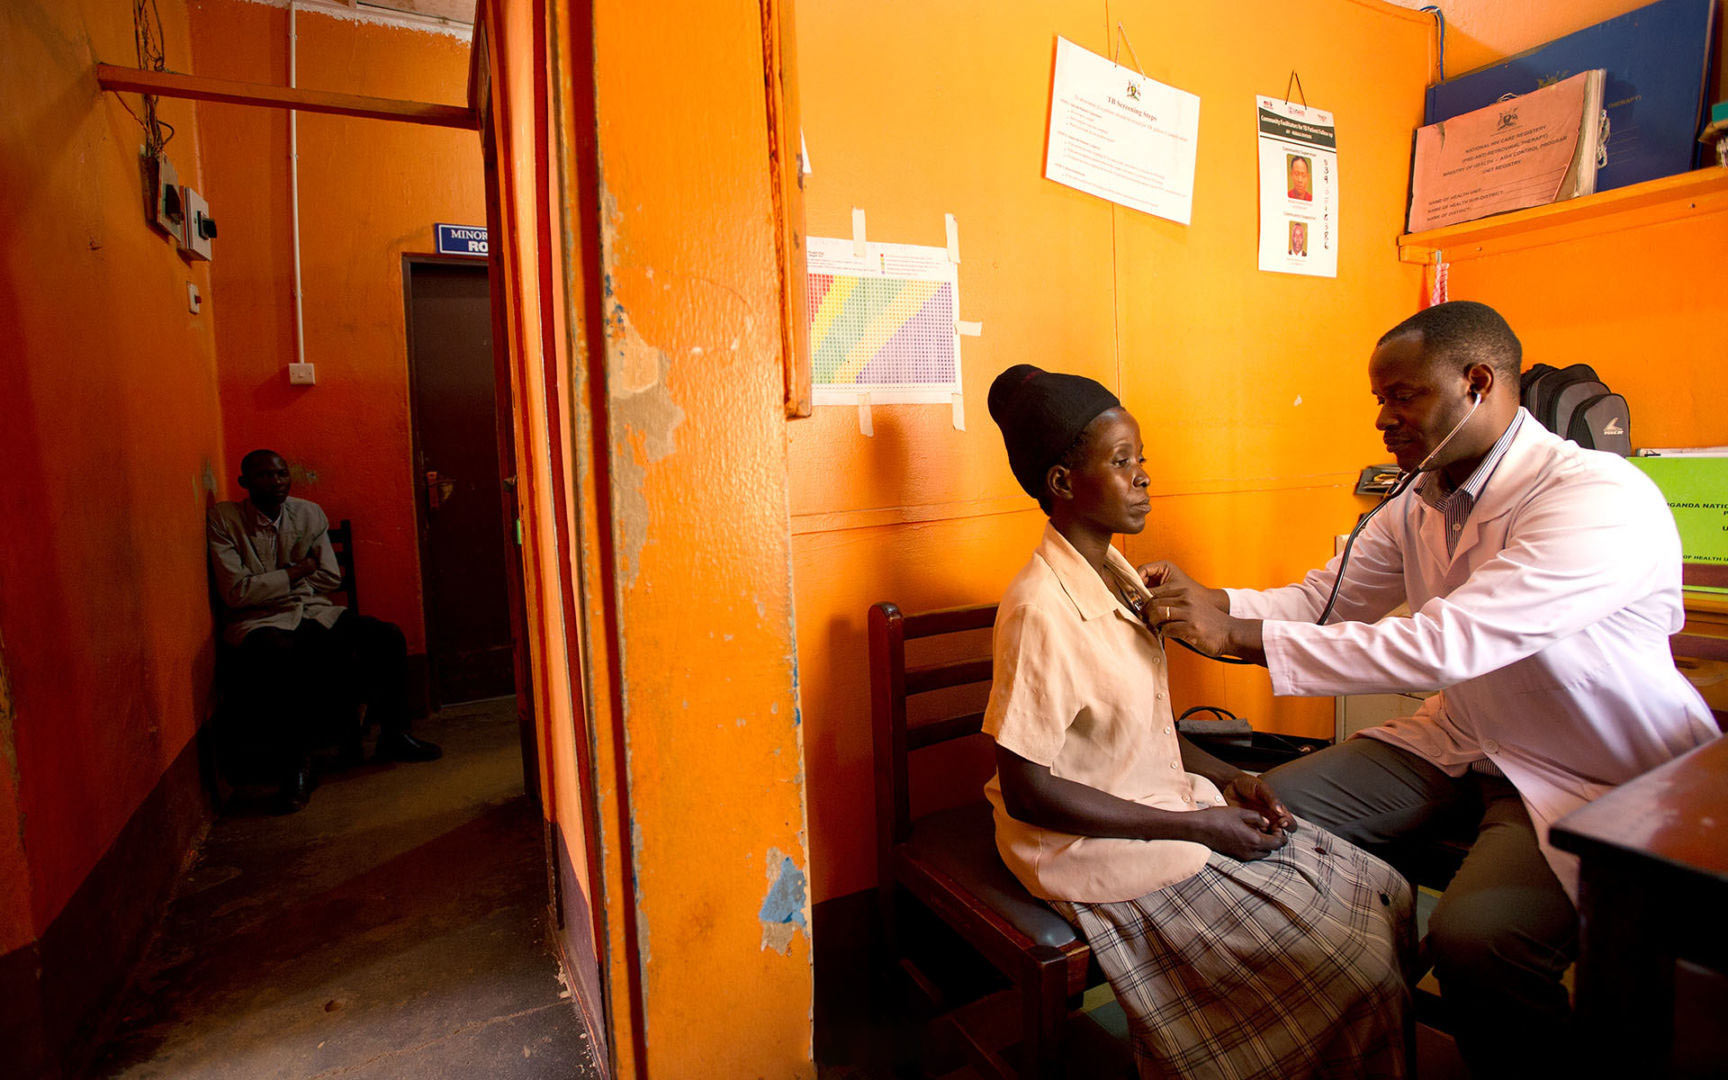 A mother with HIV having a checkup from a doctor in Uganda